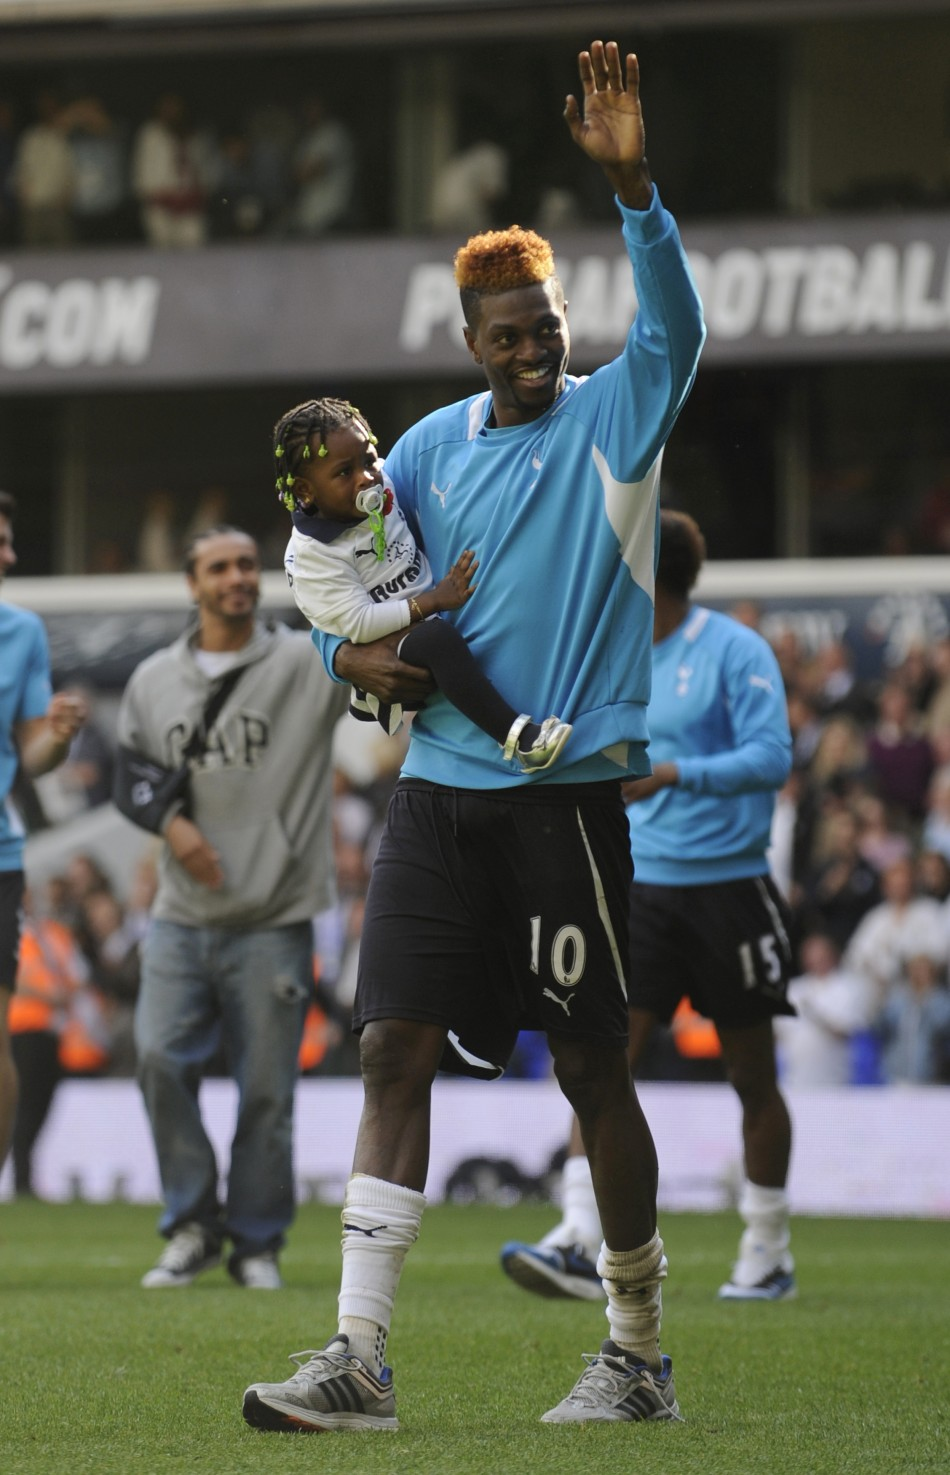 Adebayor, who was on a season-long loan at Tottenham from Manchester City, holds his daughter as he waves to fans after the English Premier League match against Fulham at White Hart Lane